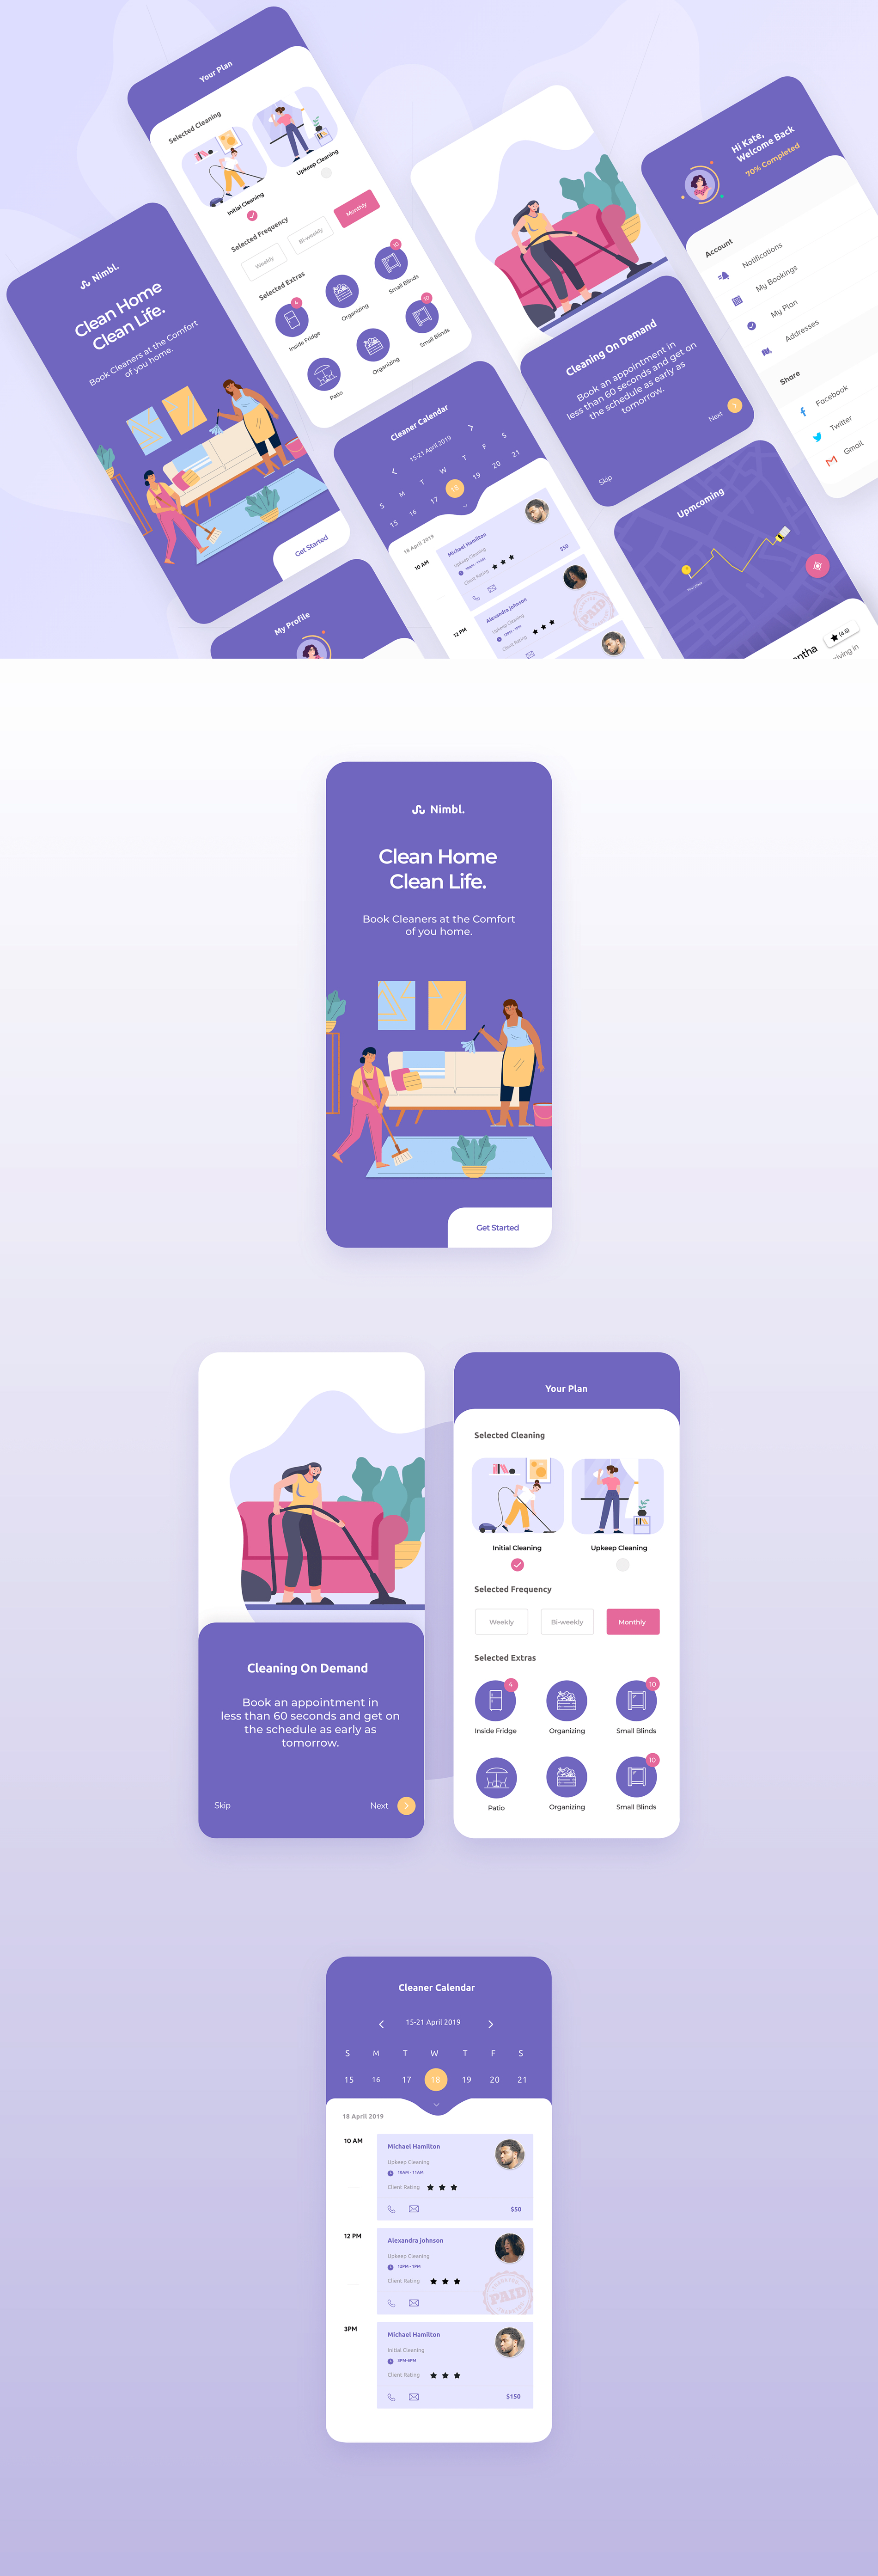 Home Cleaning App for Adobe XD   uistore.design